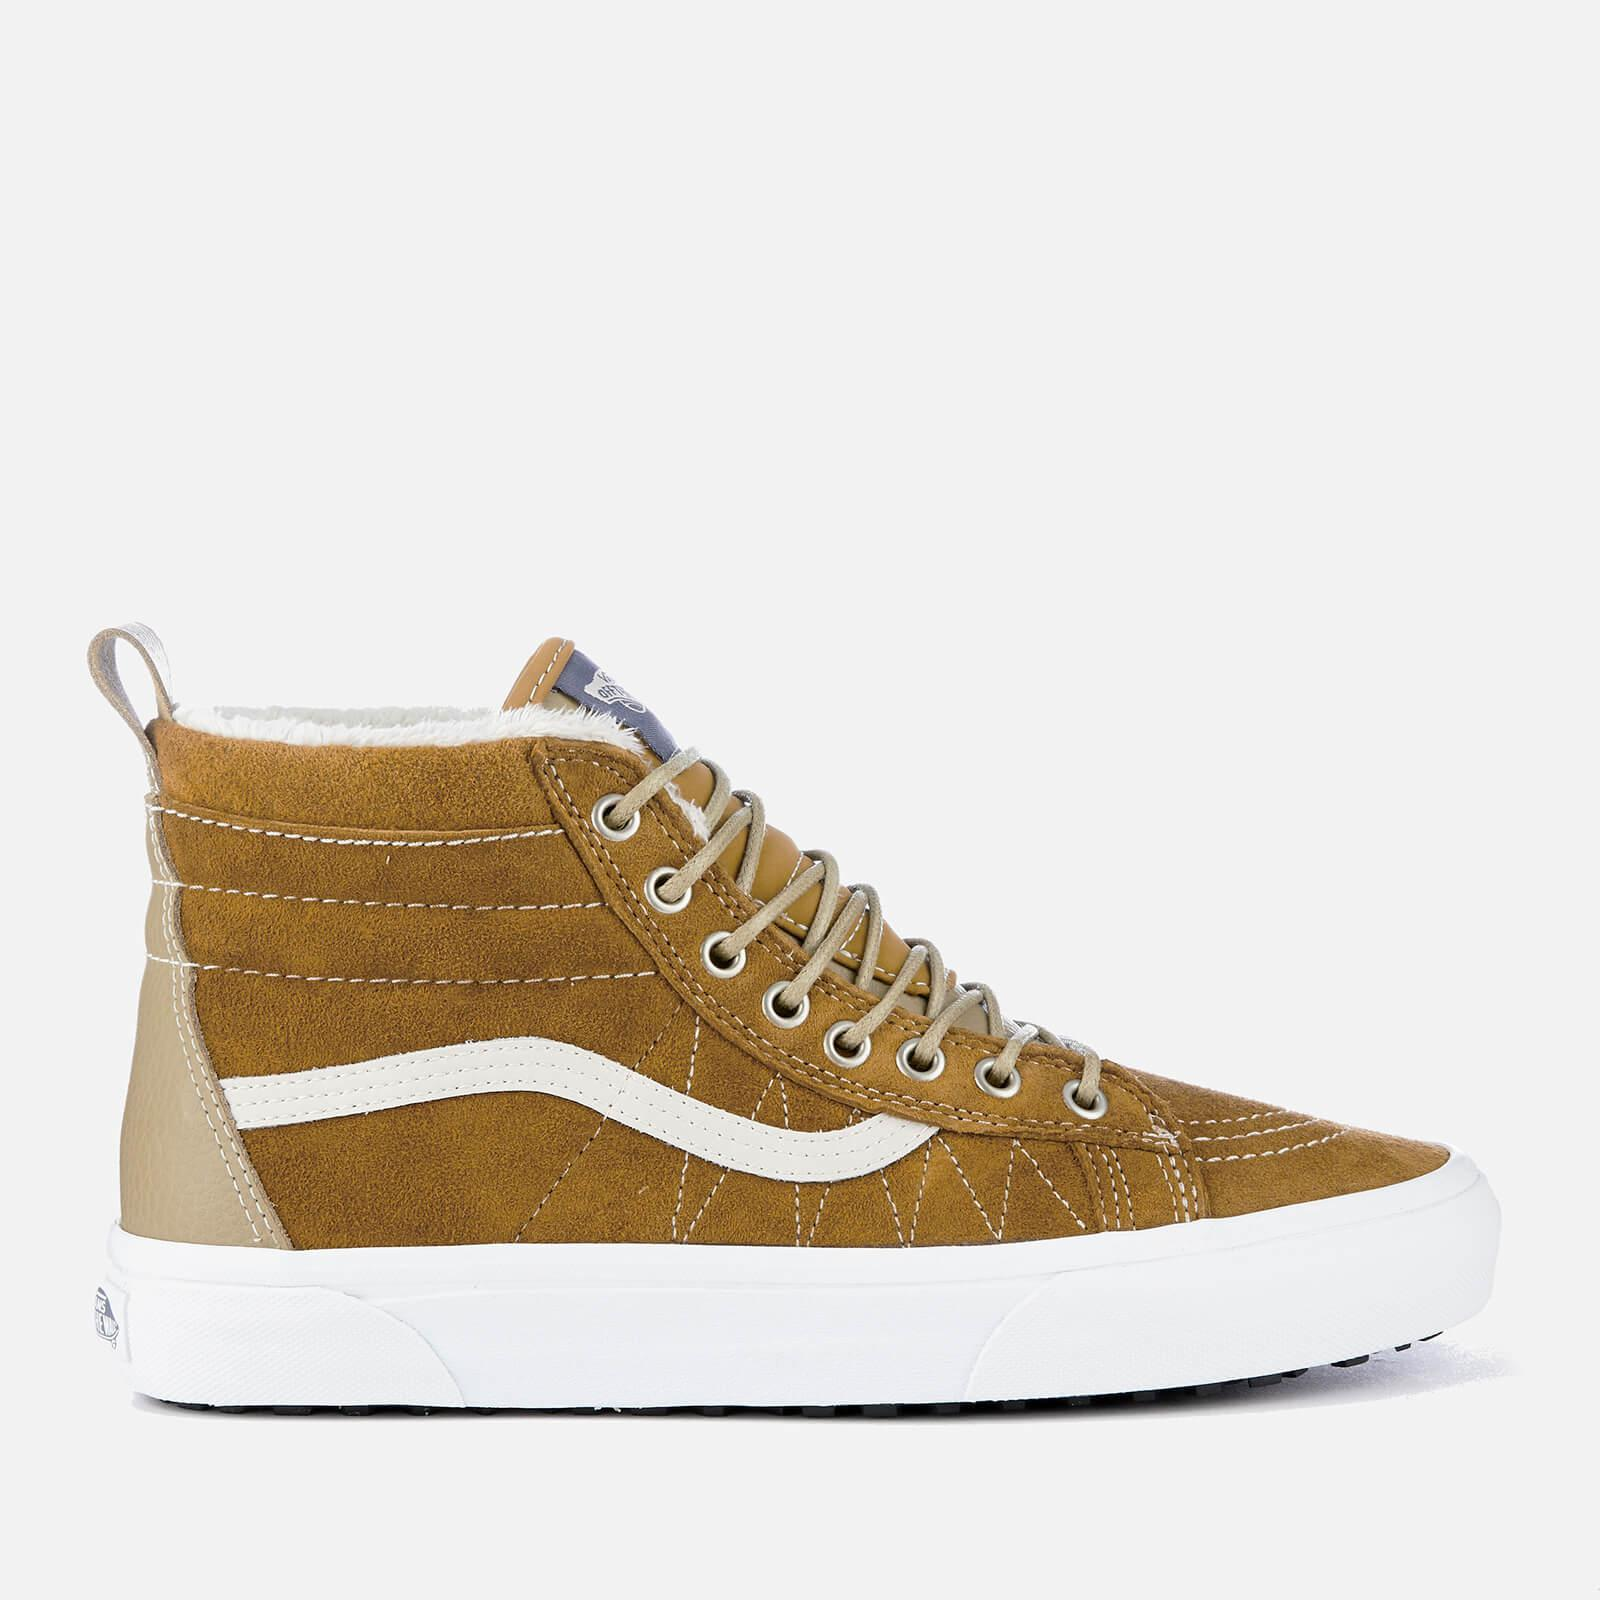 1408b1e30 Lyst - Vans Sk8-hi Mte Trainers in Green for Men